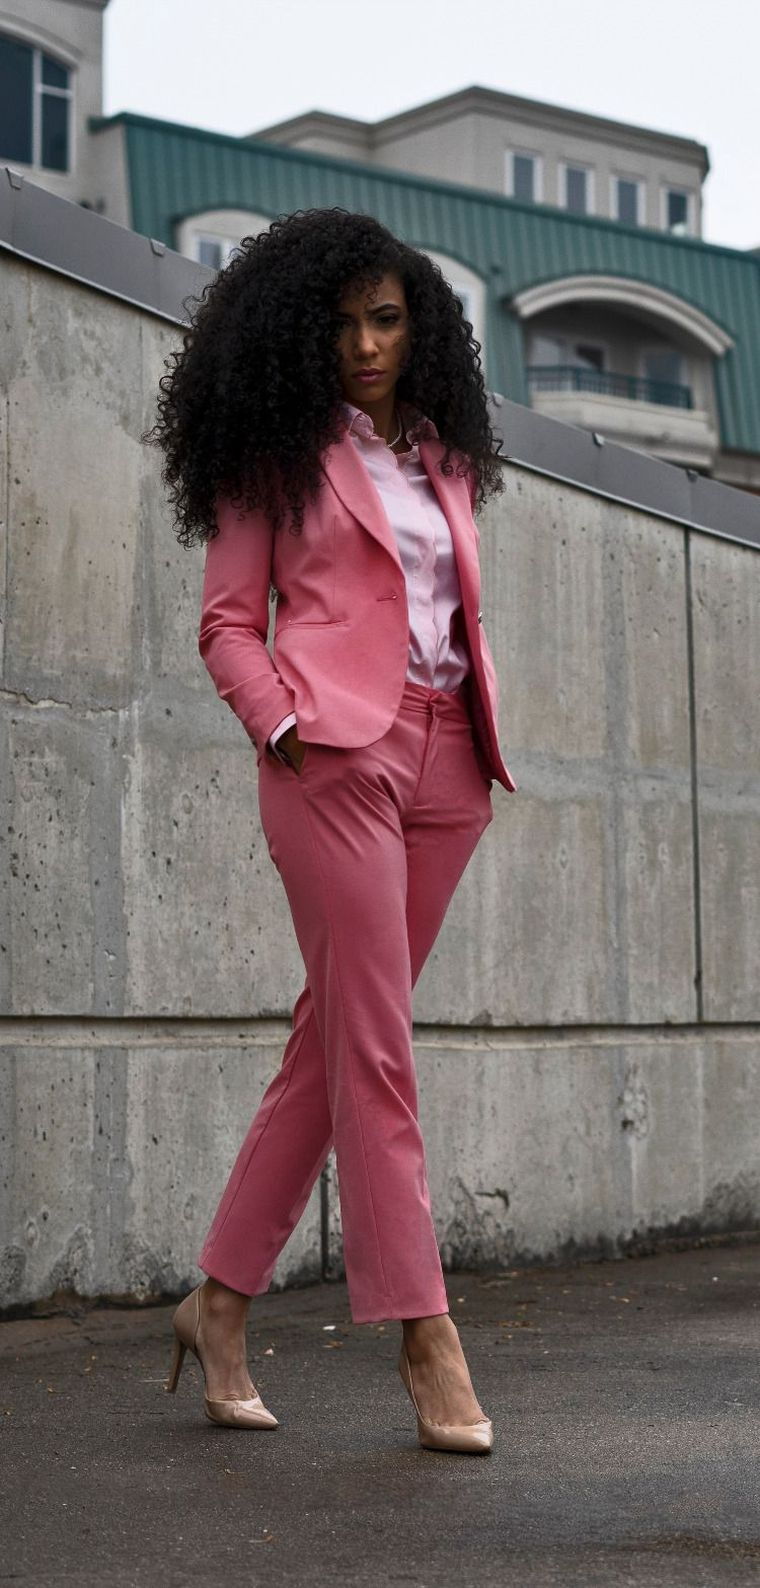 how to dress at work with a pink suit